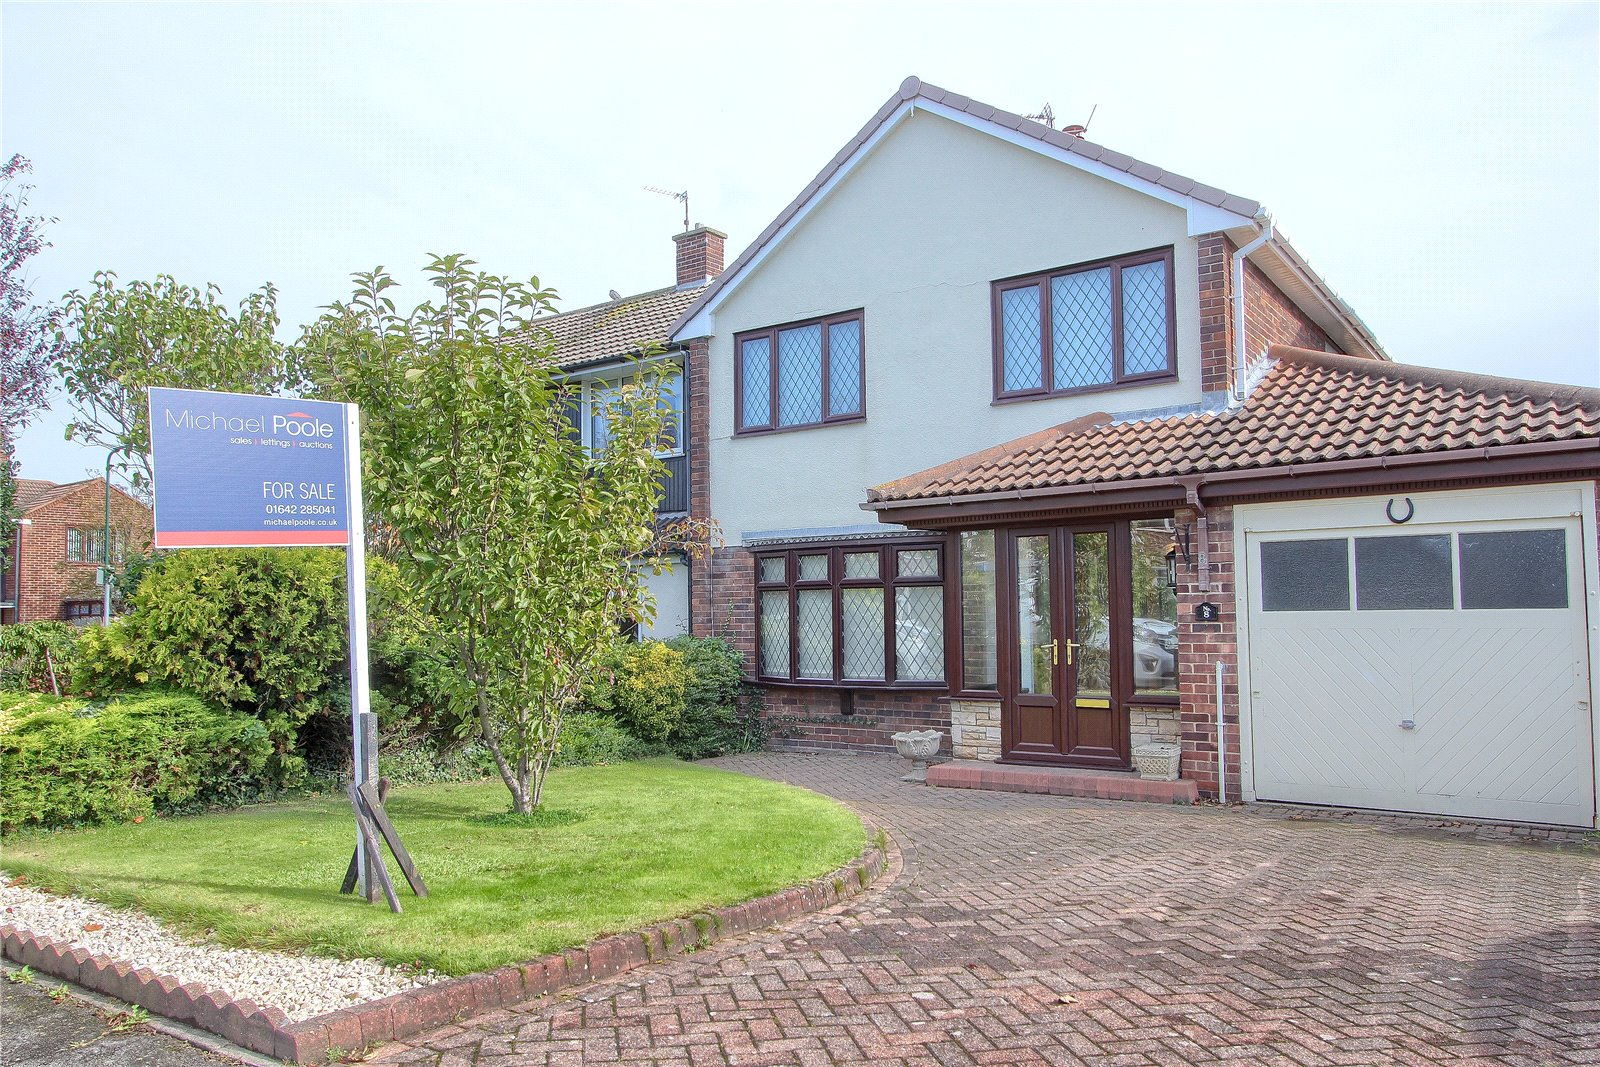 3 bed house for sale in Fir Rigg Drive, Marske-by-the-Sea 1